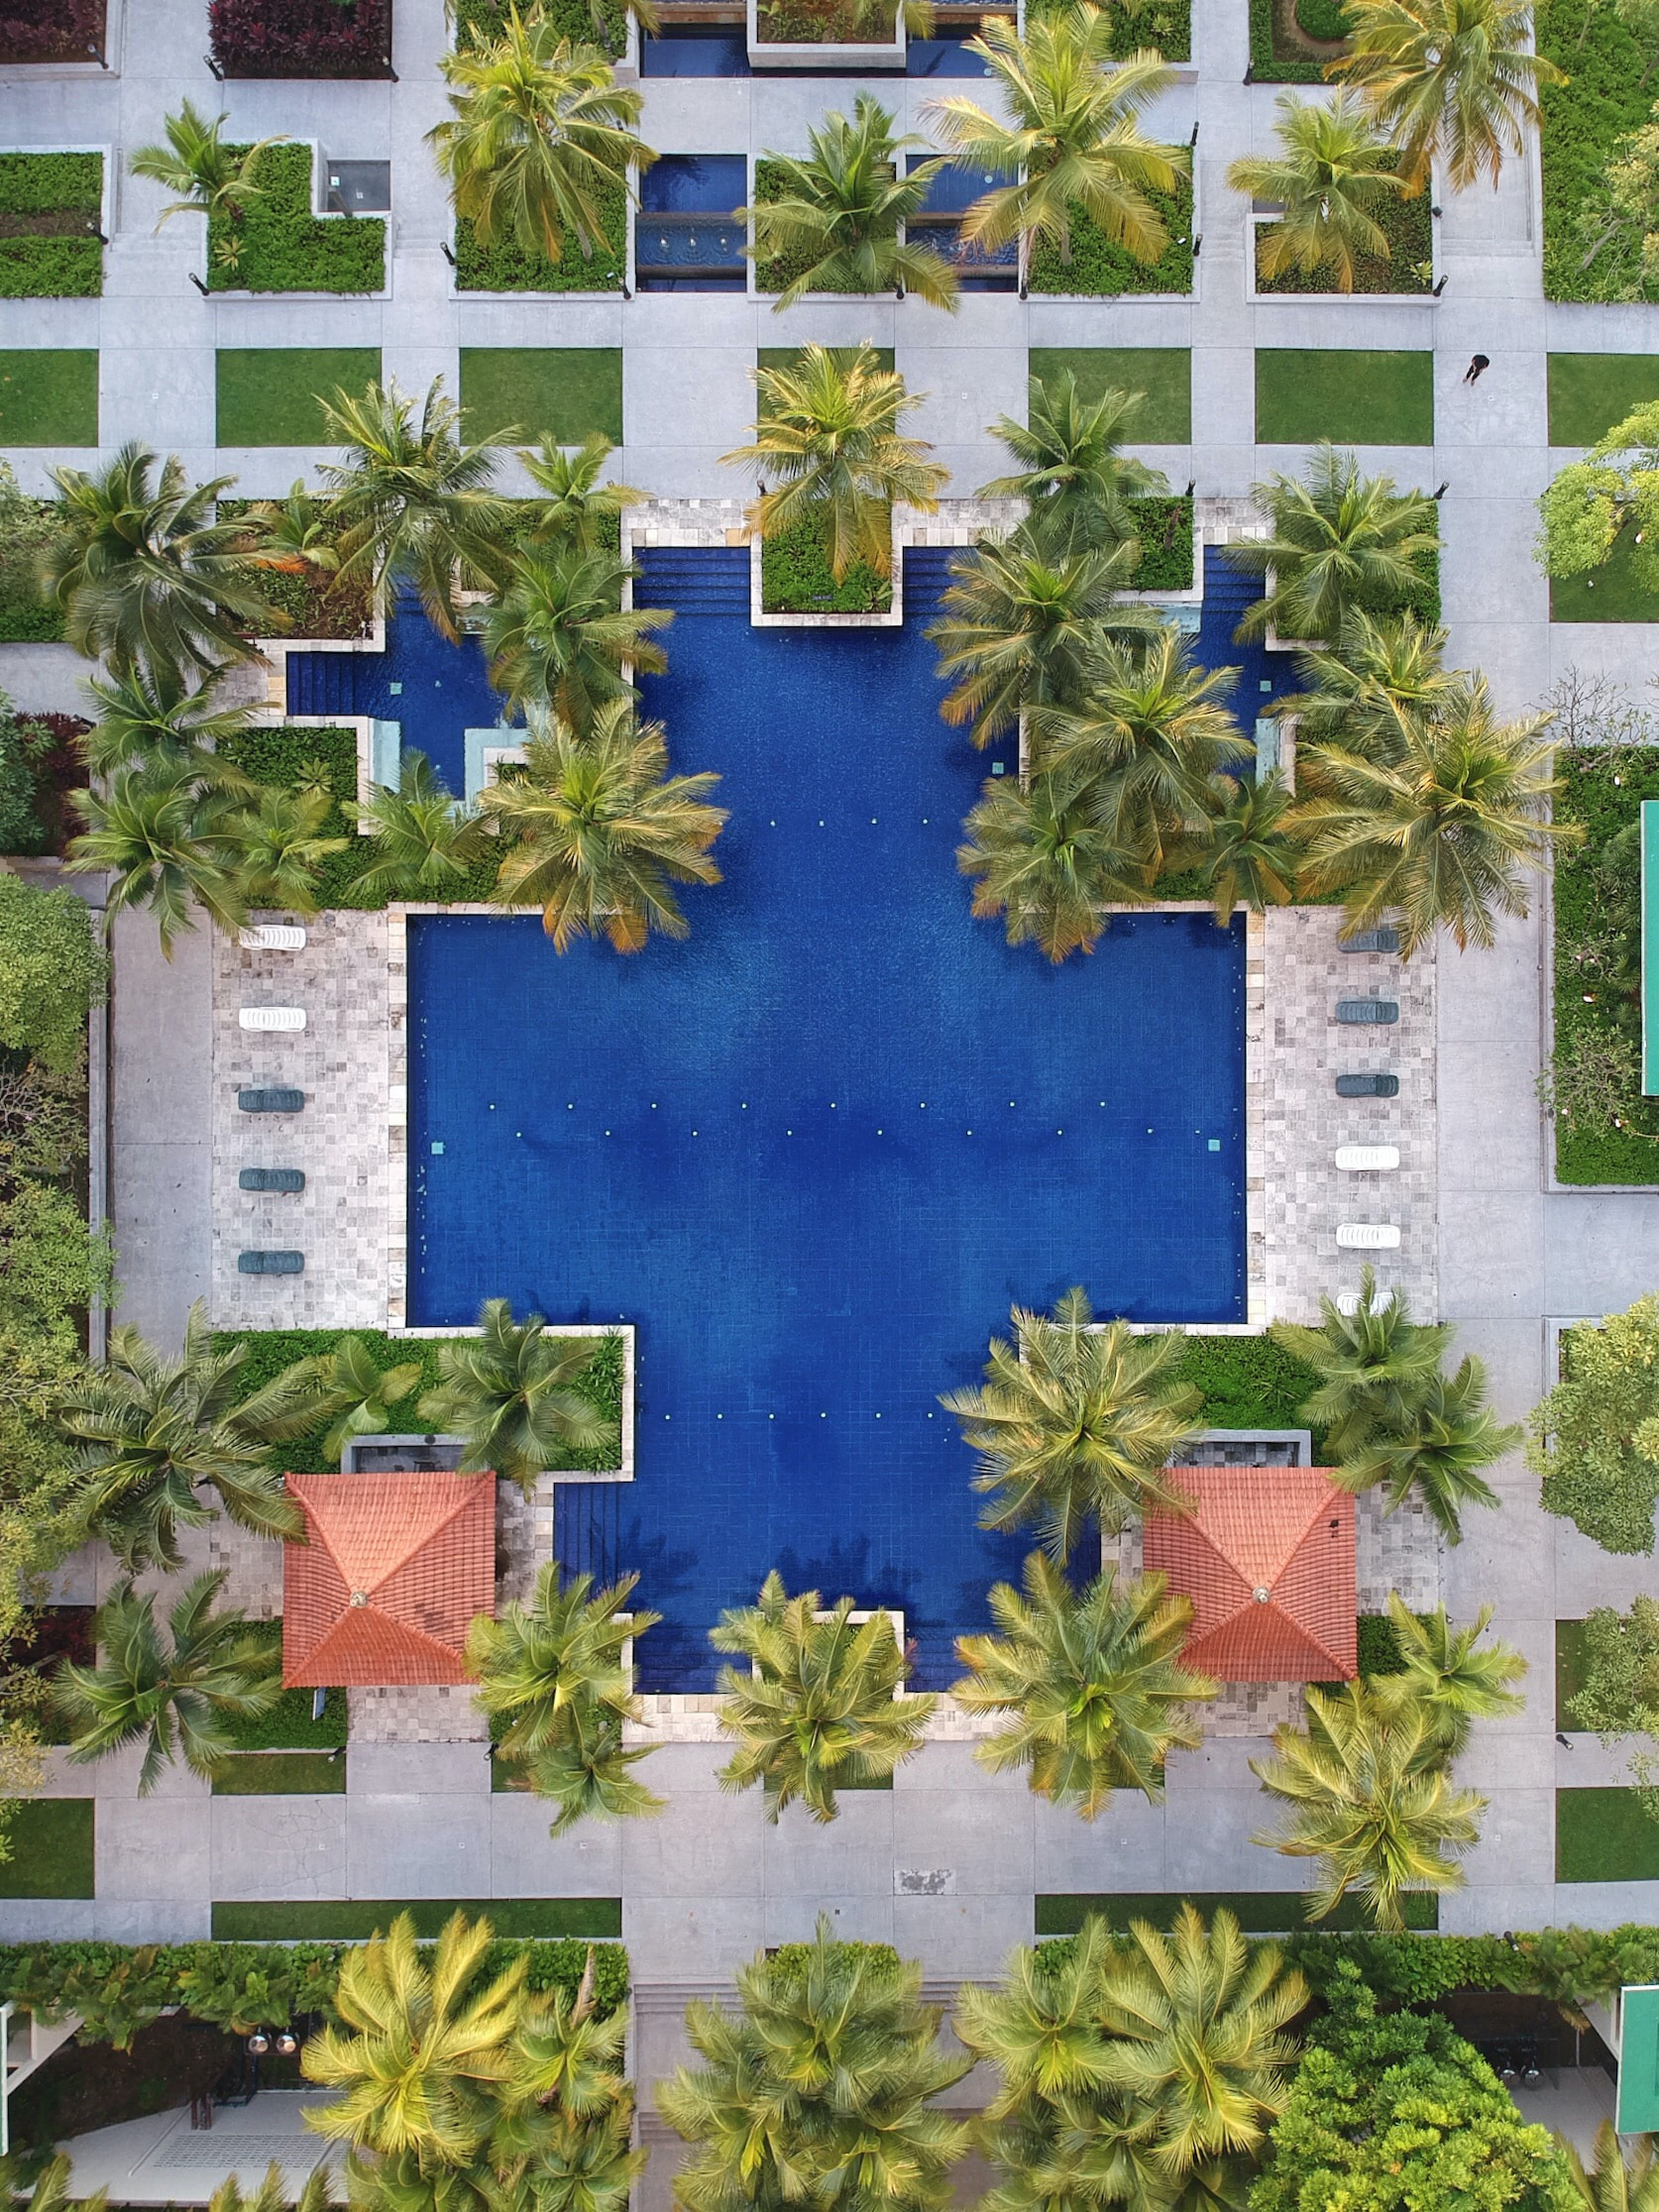 aerial view of pool surrounded by palm trees